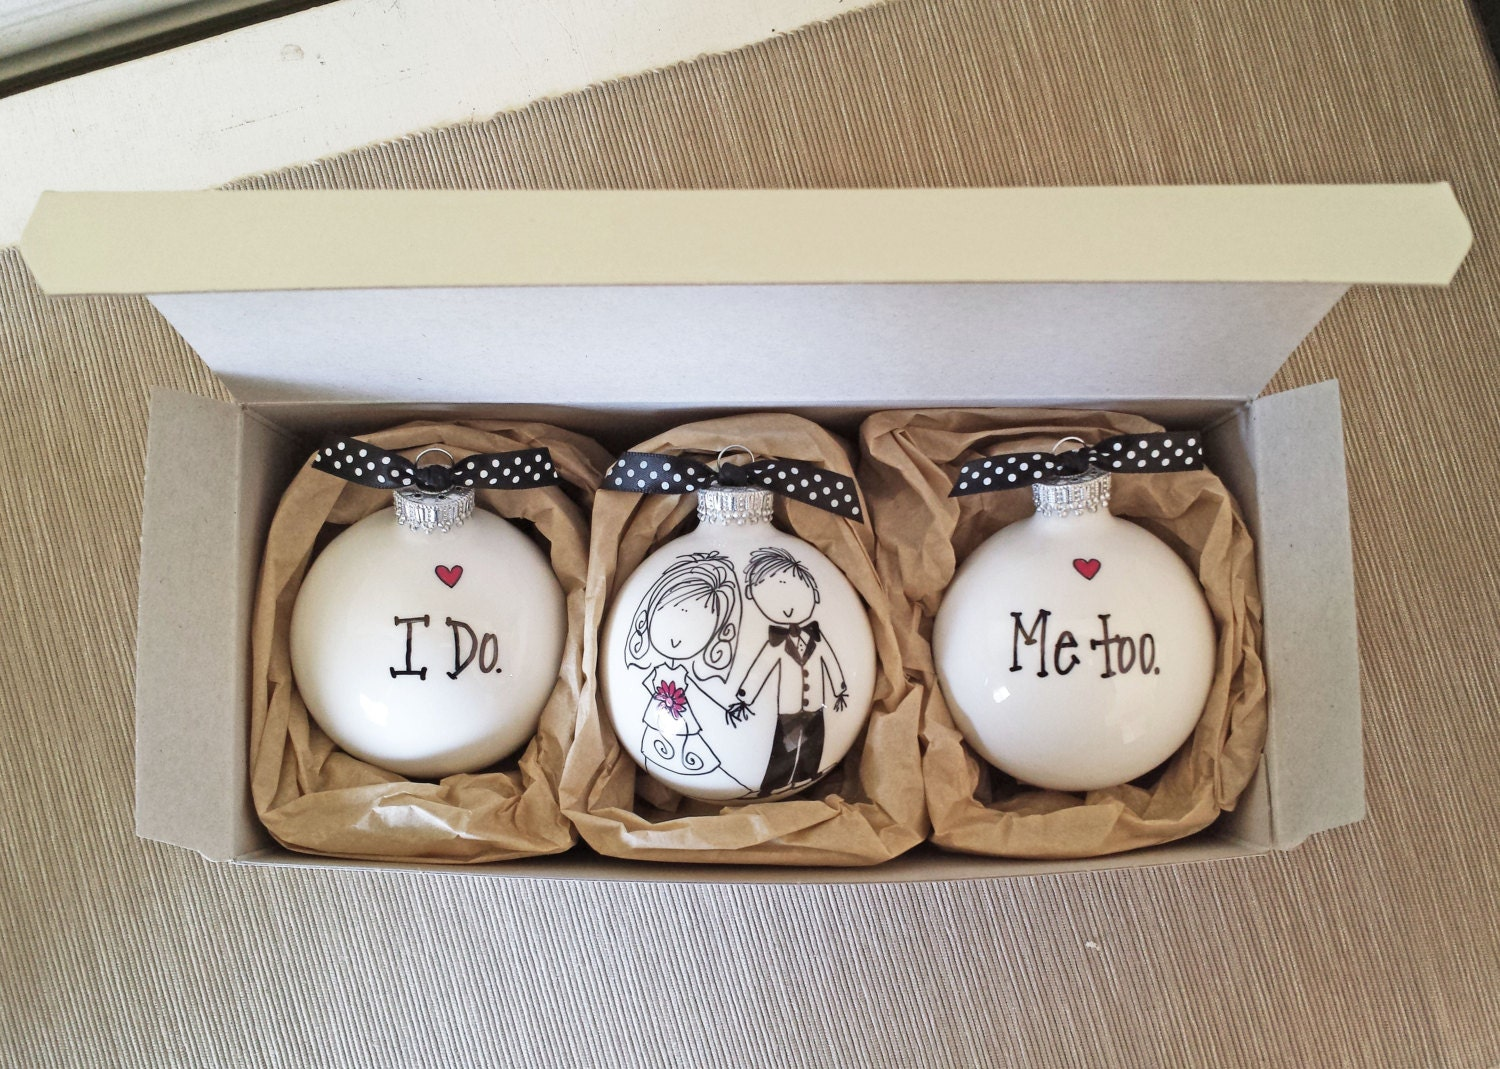 Wedding Keepsake Gifts For The Bride : Wedding Ornaments Keepsake Wedding Gift Personalized Wedding